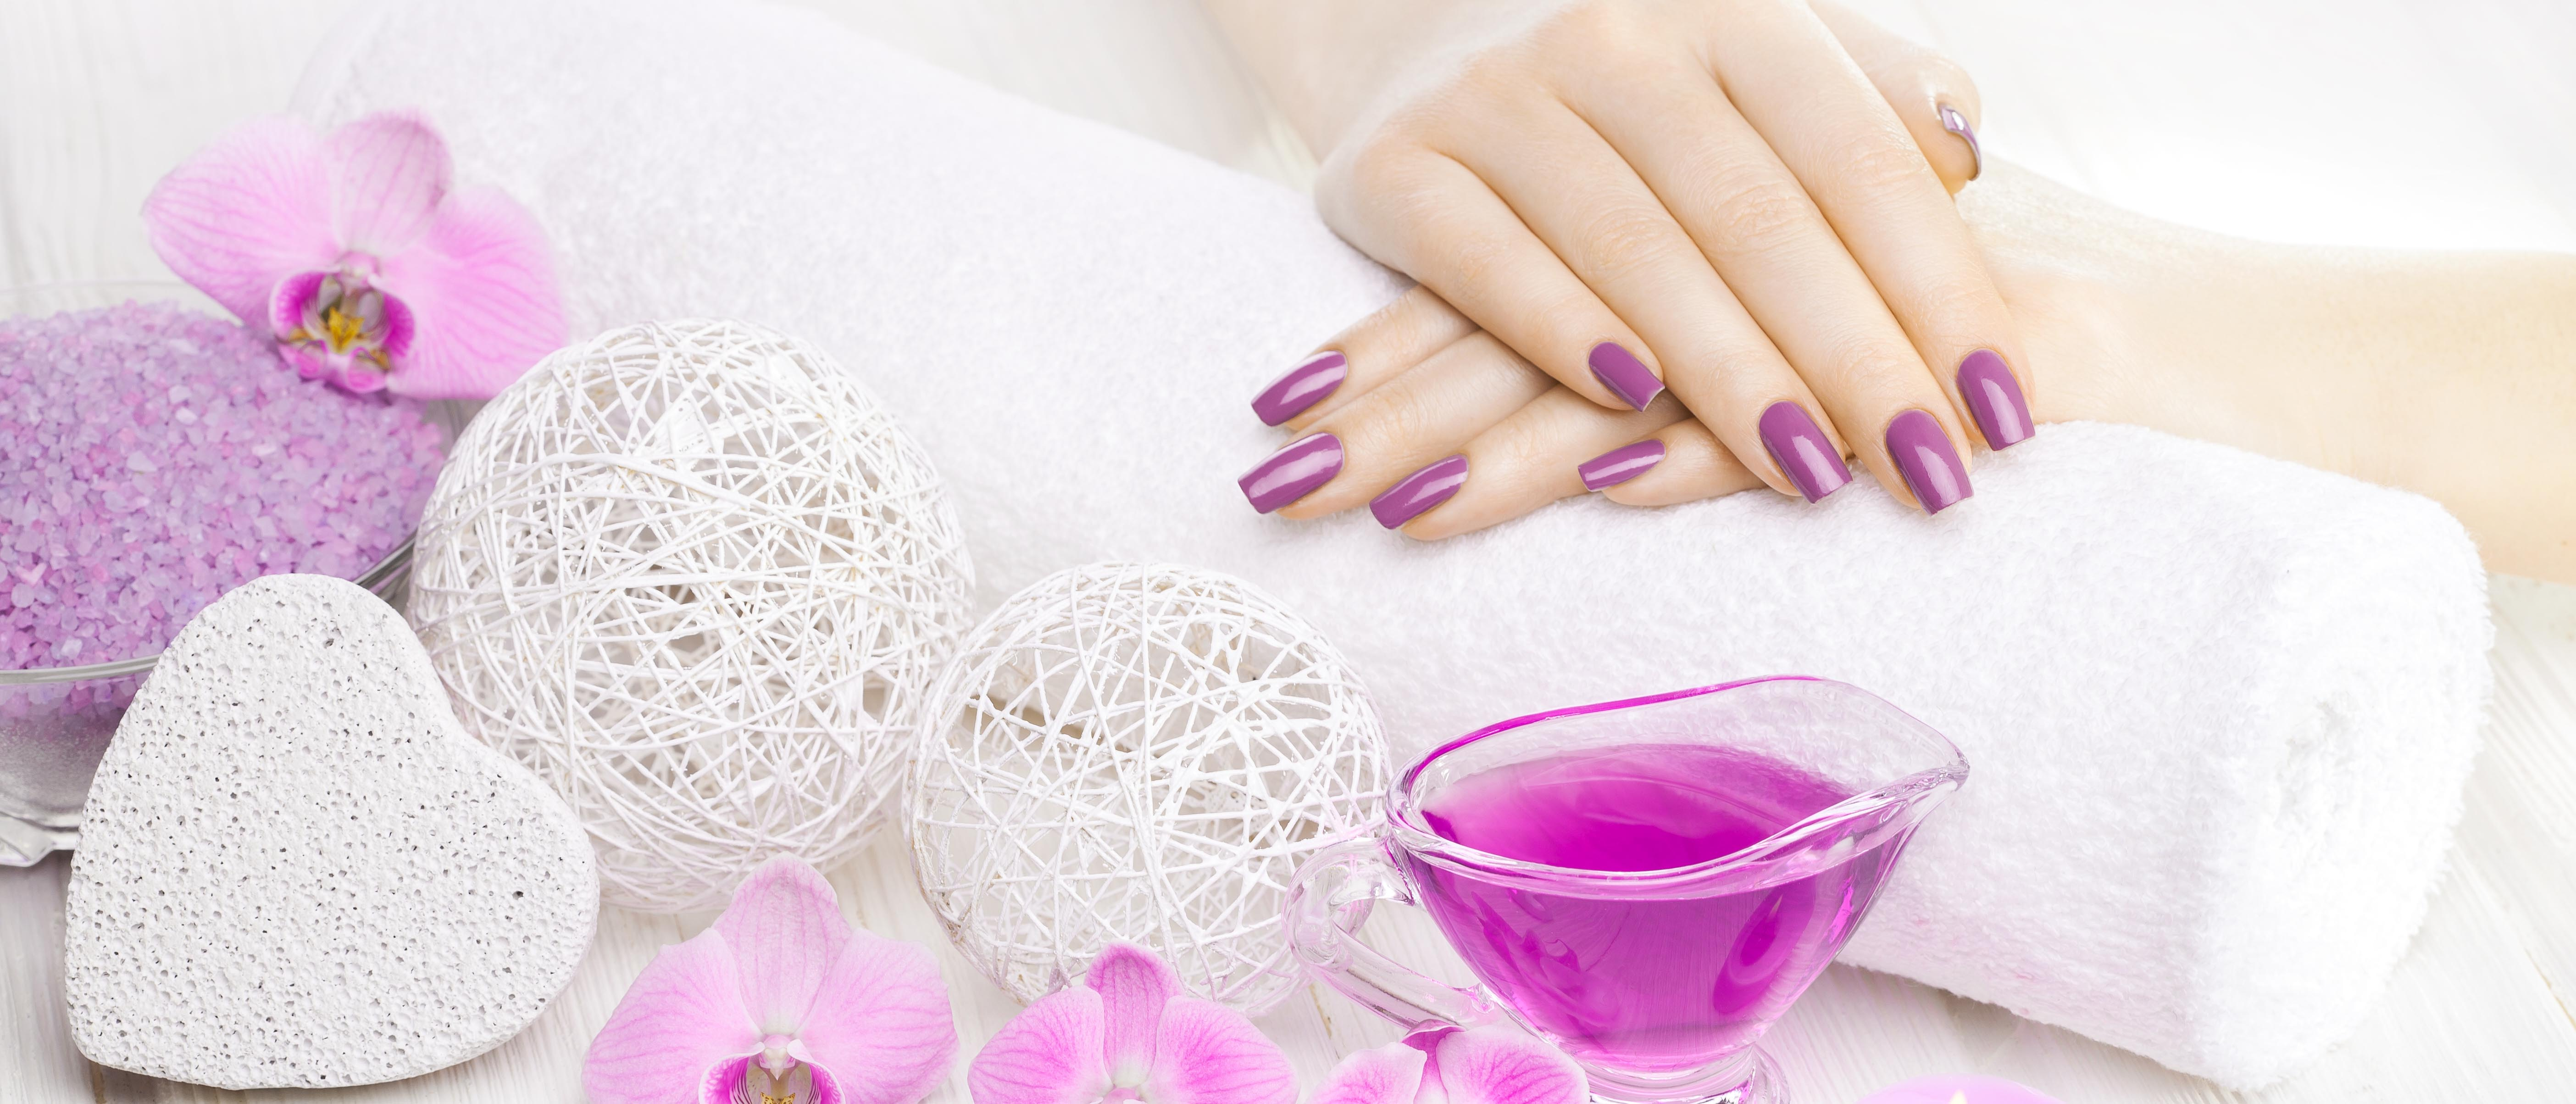 Services | Nail Palace - Manicures, Pedicures, Sole Renewal Treatment